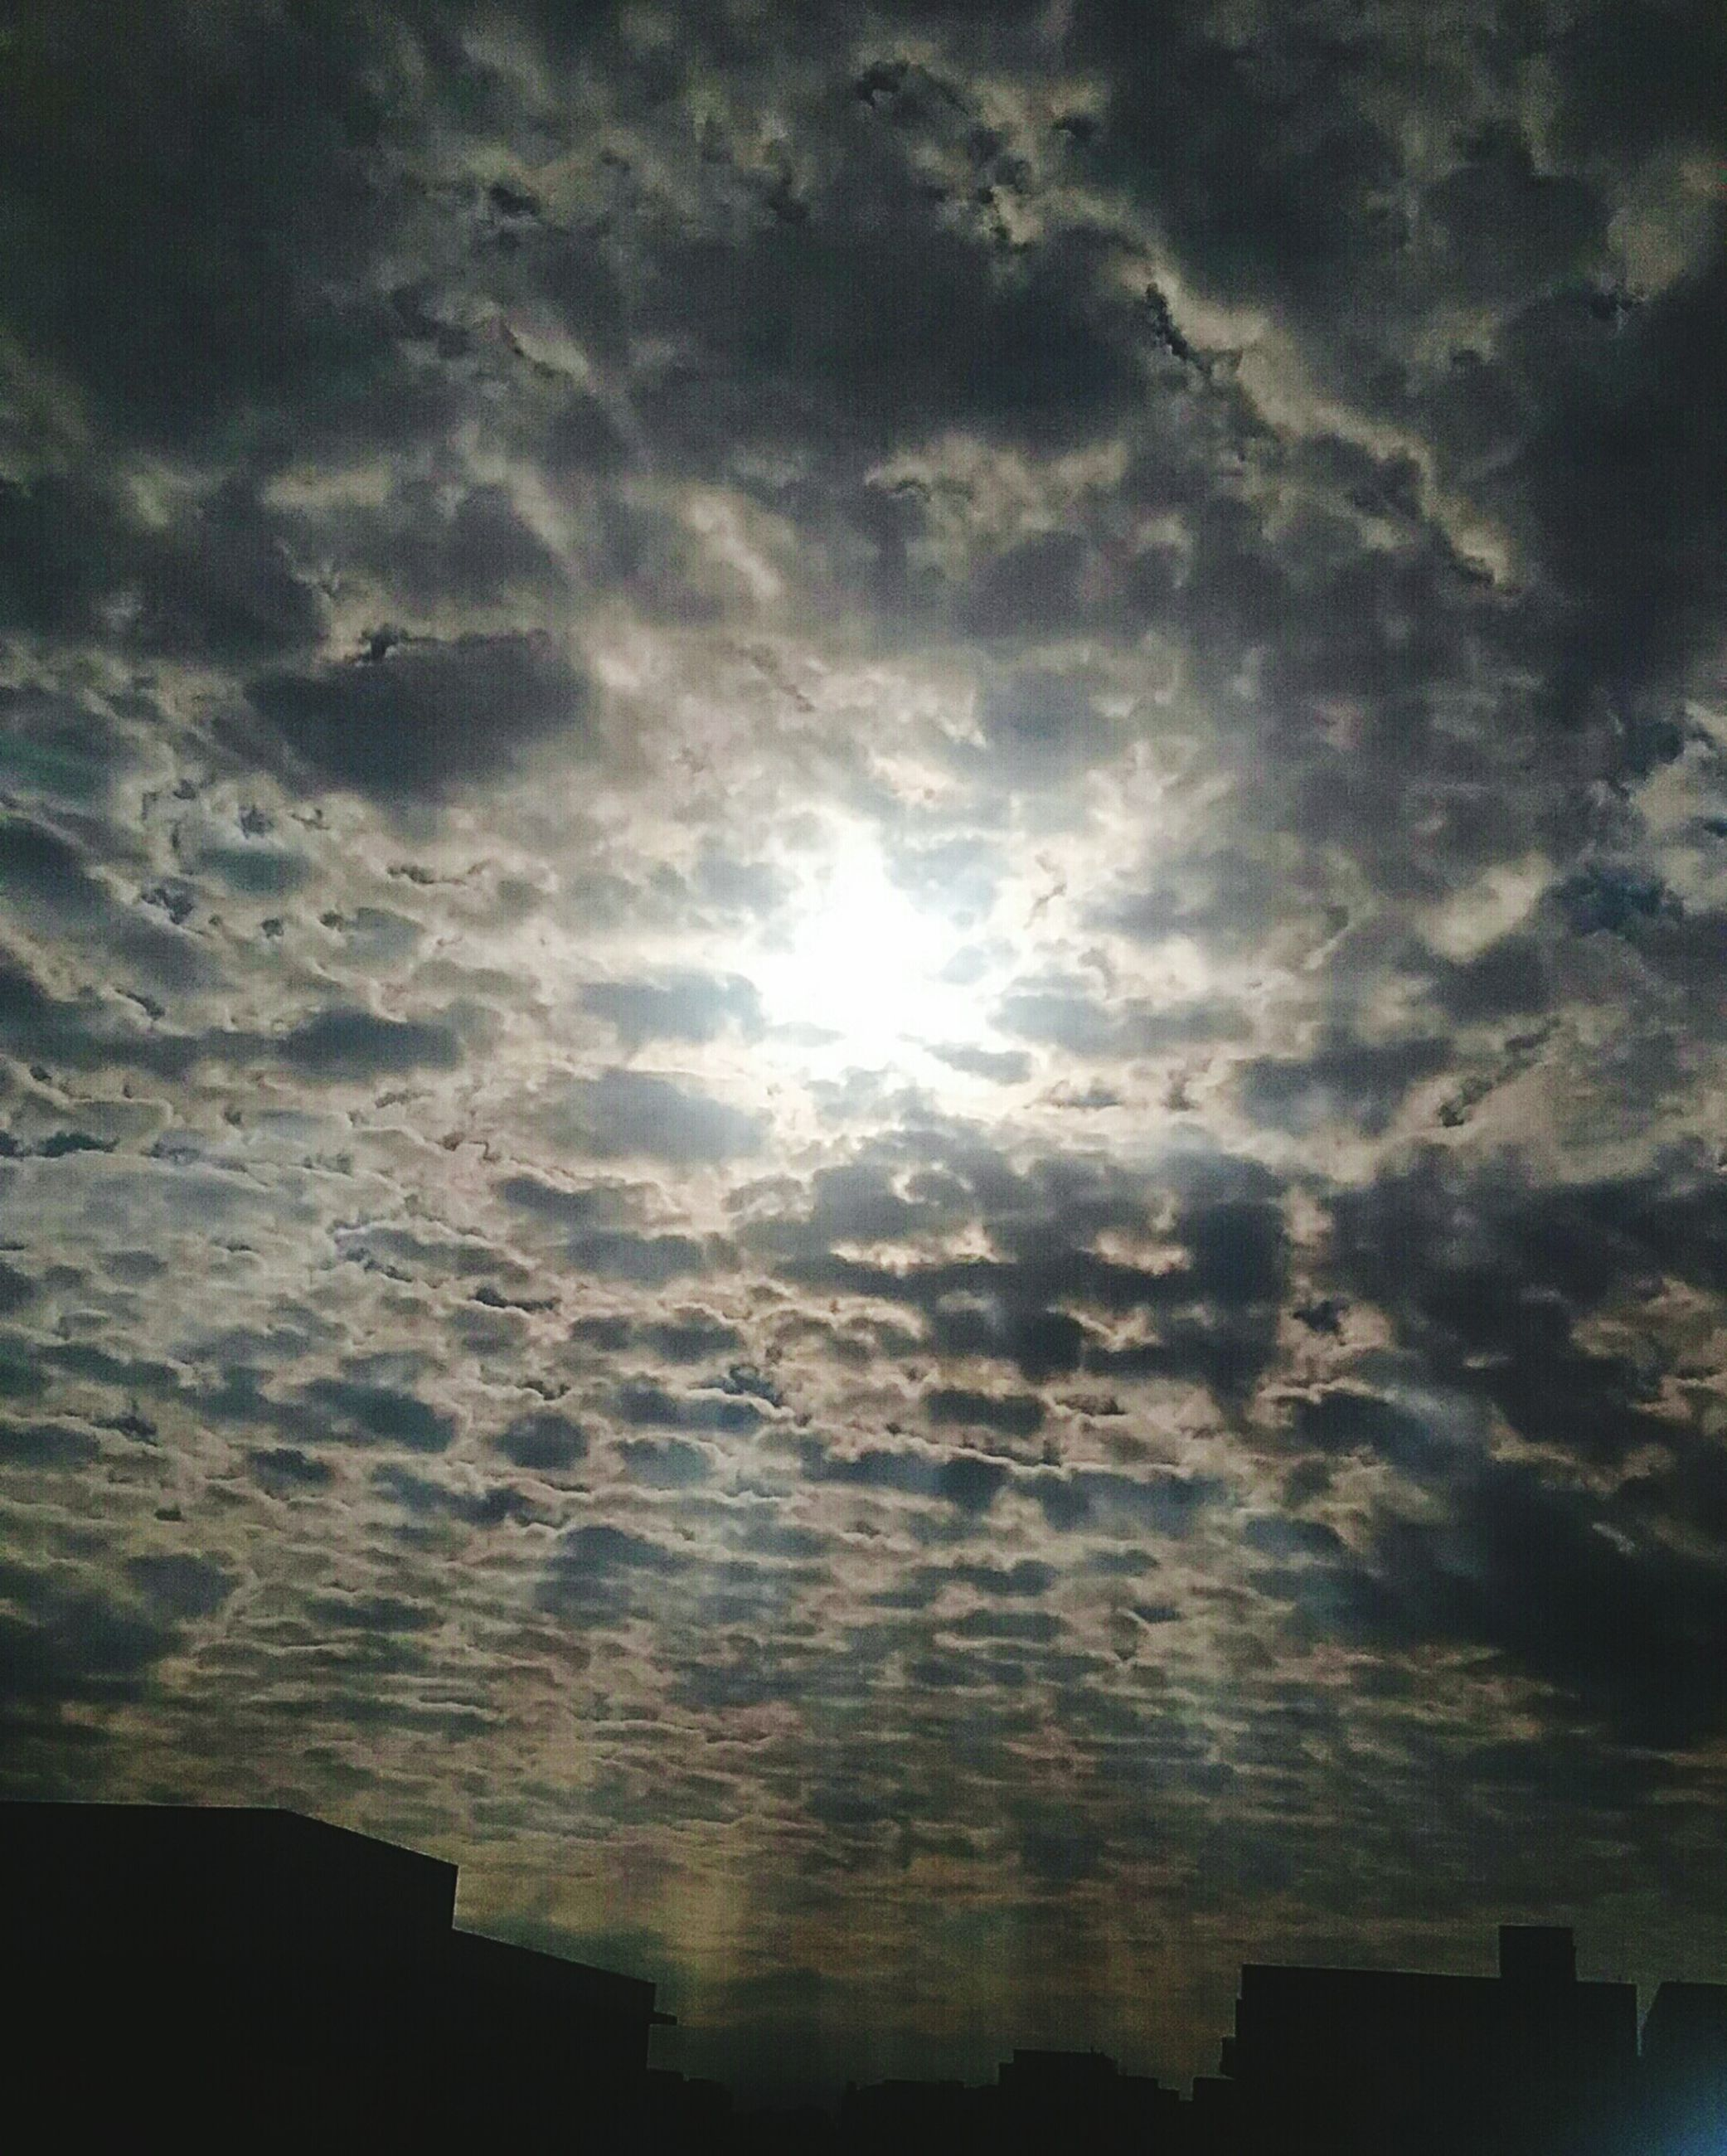 sun, sunlight, sunbeam, sky, nature, cloud - sky, low angle view, no people, sunset, tranquility, beauty in nature, scenics, outdoors, day